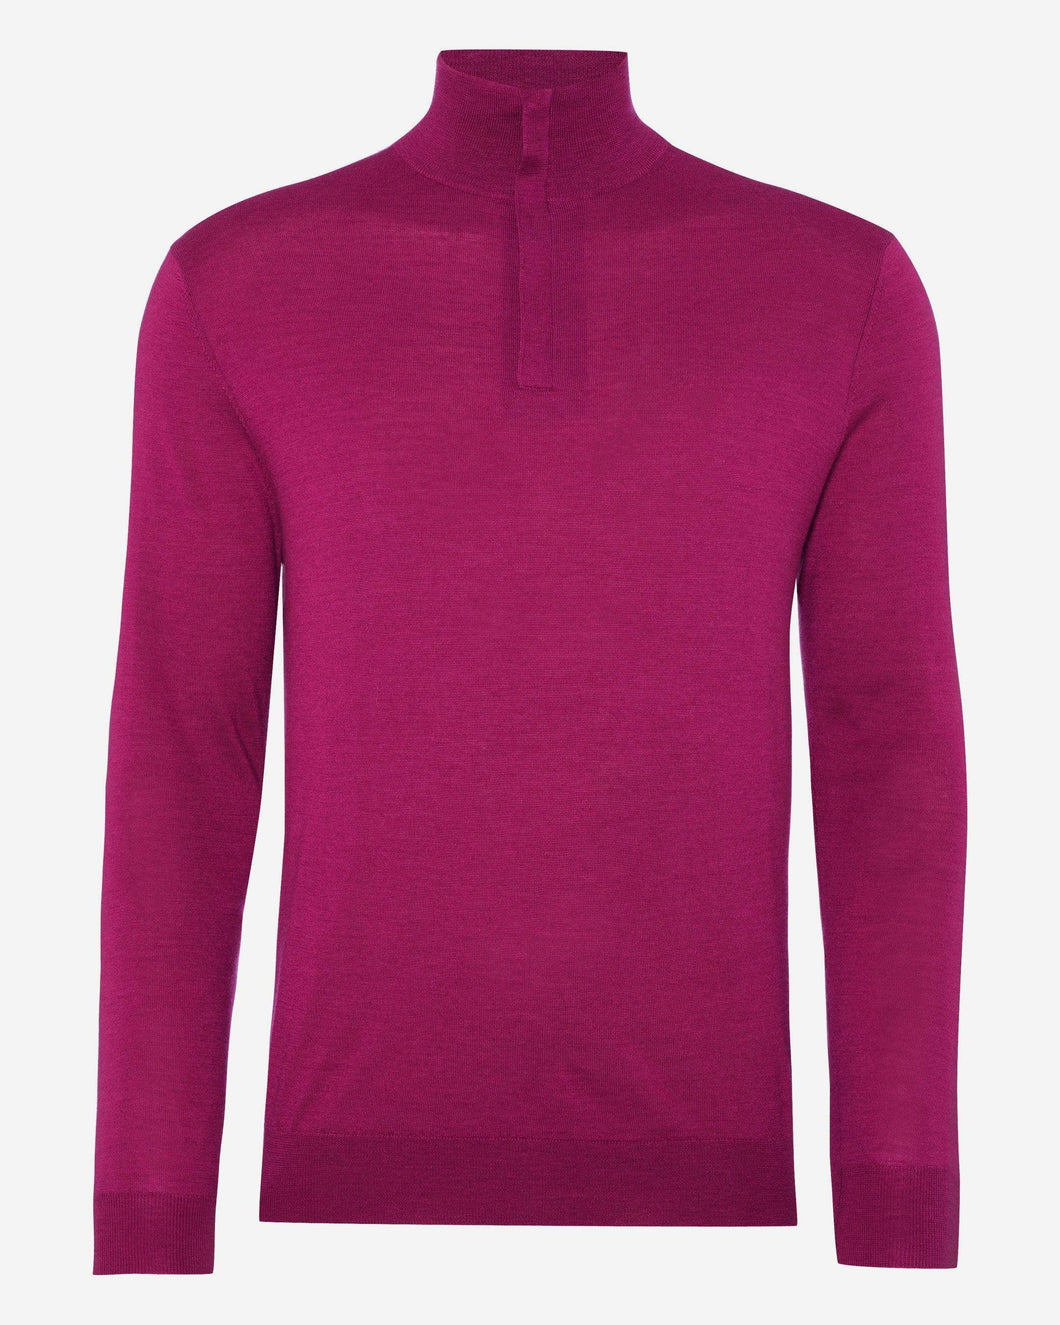 The Regent Fine Gauge Half Zip Sweater Cerise Pink